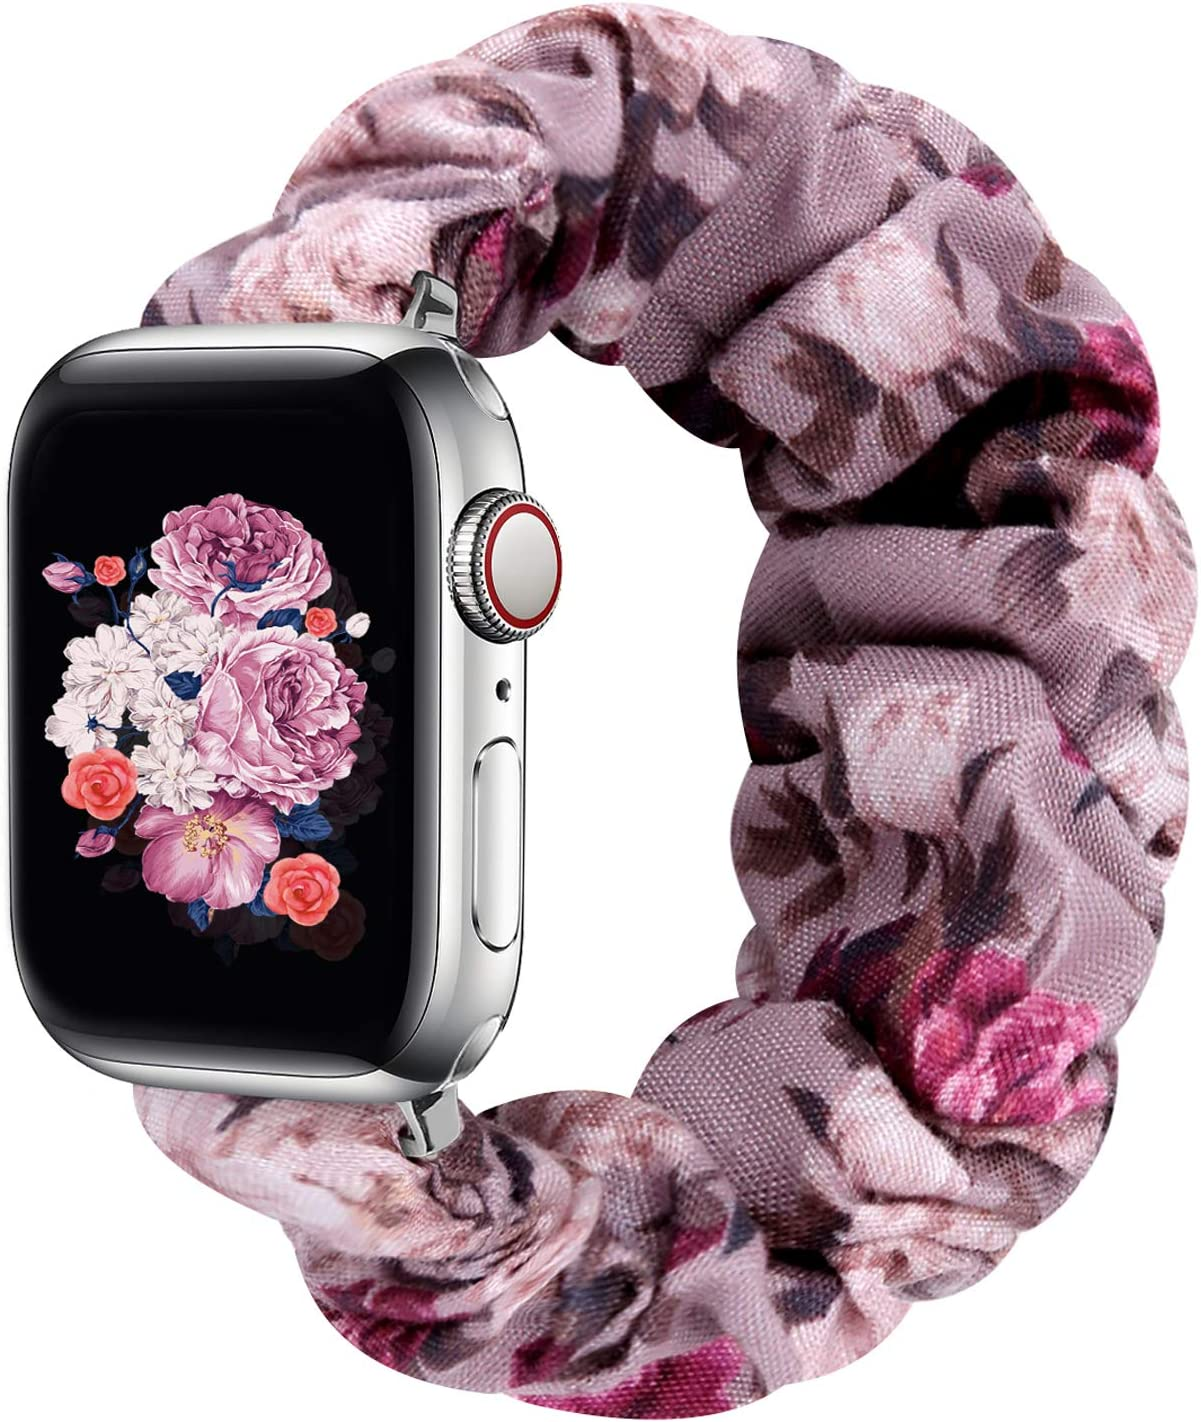 Compatible with Apple Watch Bands 38mm 40mm 42mm 44mm, Elastic Scrunchie Apple Watch Bands for Women, Stretchy iwatch Bands for Apple Watch Series 6 5 4 3 2 1 SE(Purple Floral-42/44M)